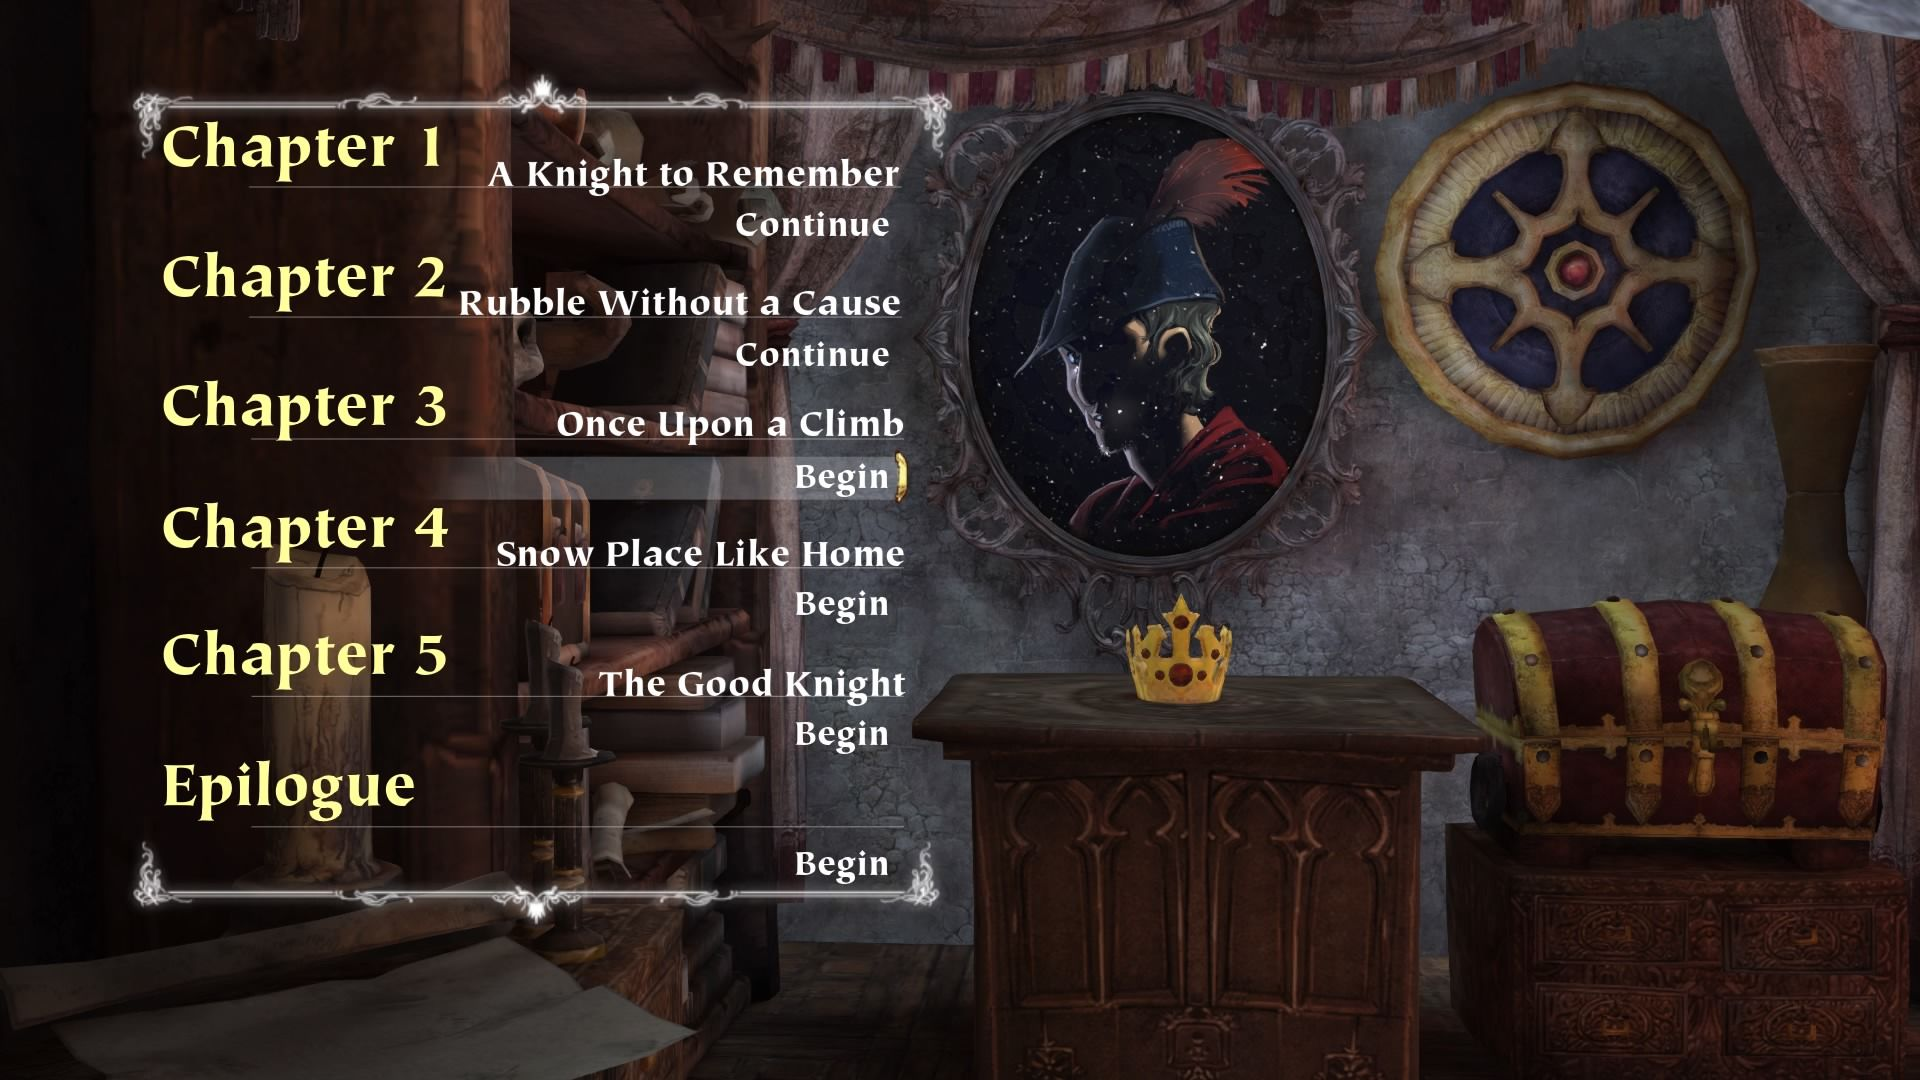 King's Quest: Chapter III - Once Upon a Climb PlayStation 4 Chapter 3 selected